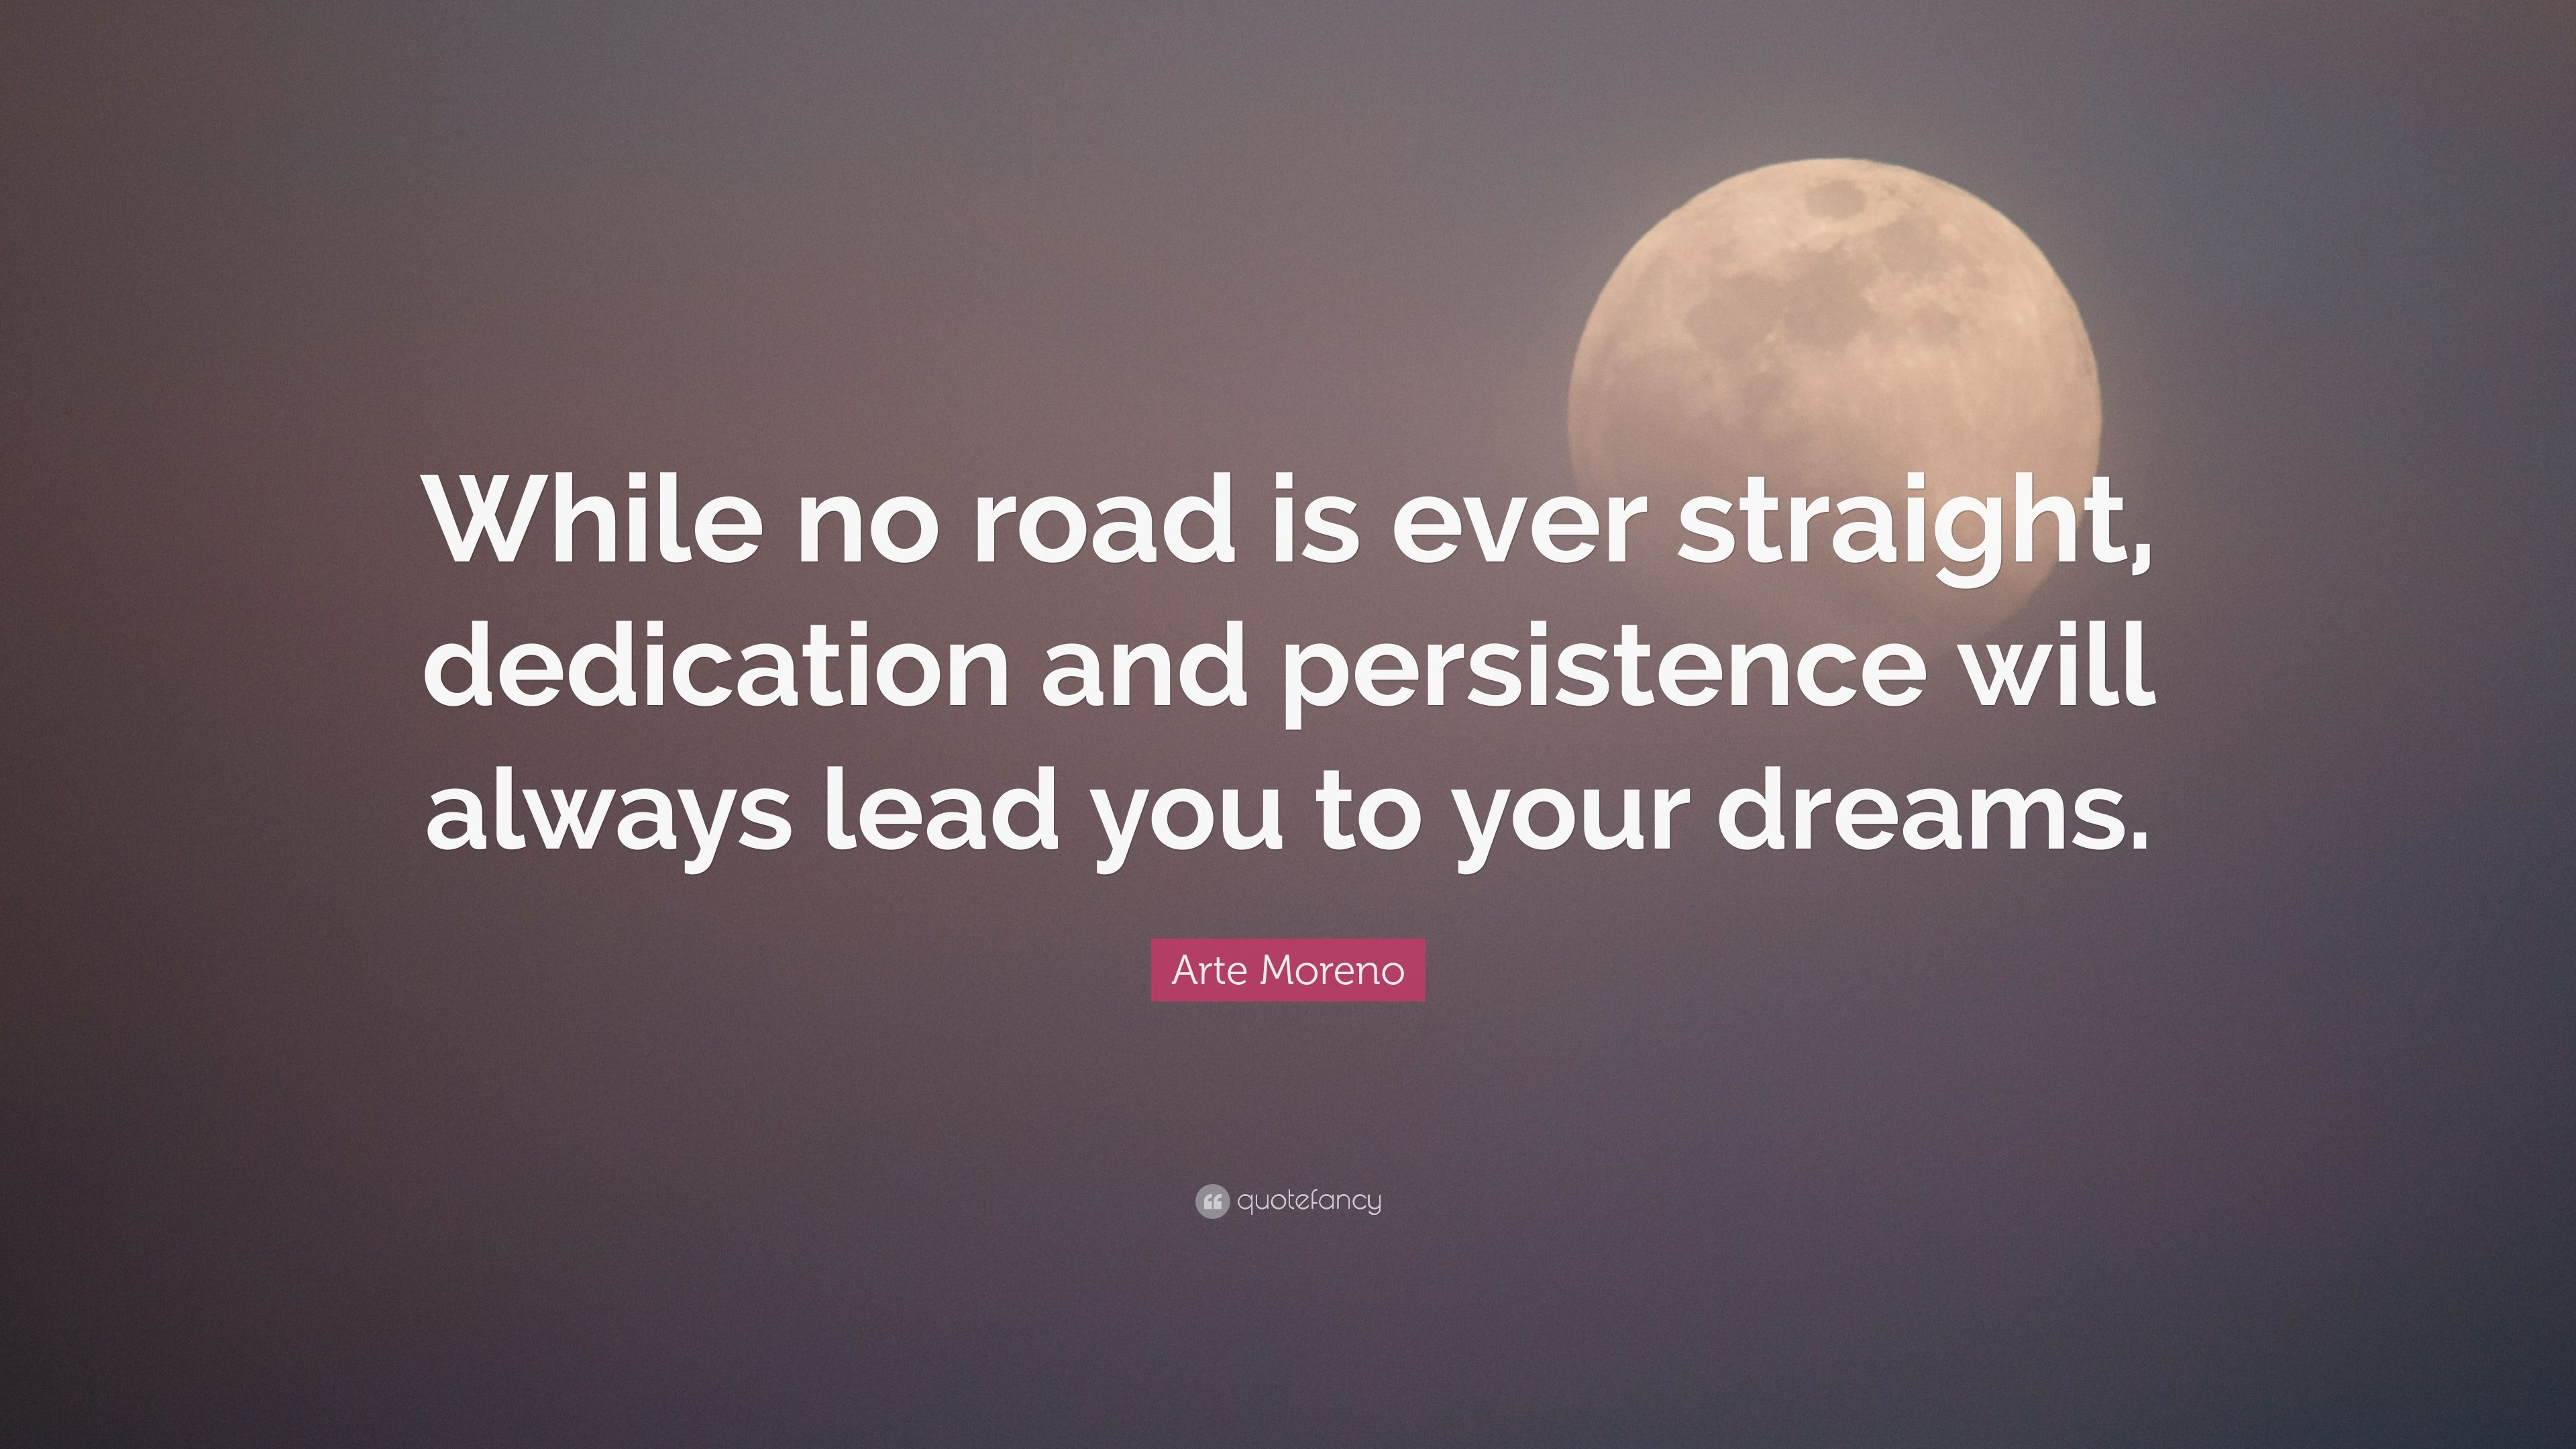 Quotes About Arte Arte Moreno Quote While No Road Is Ever Straight Dedication And